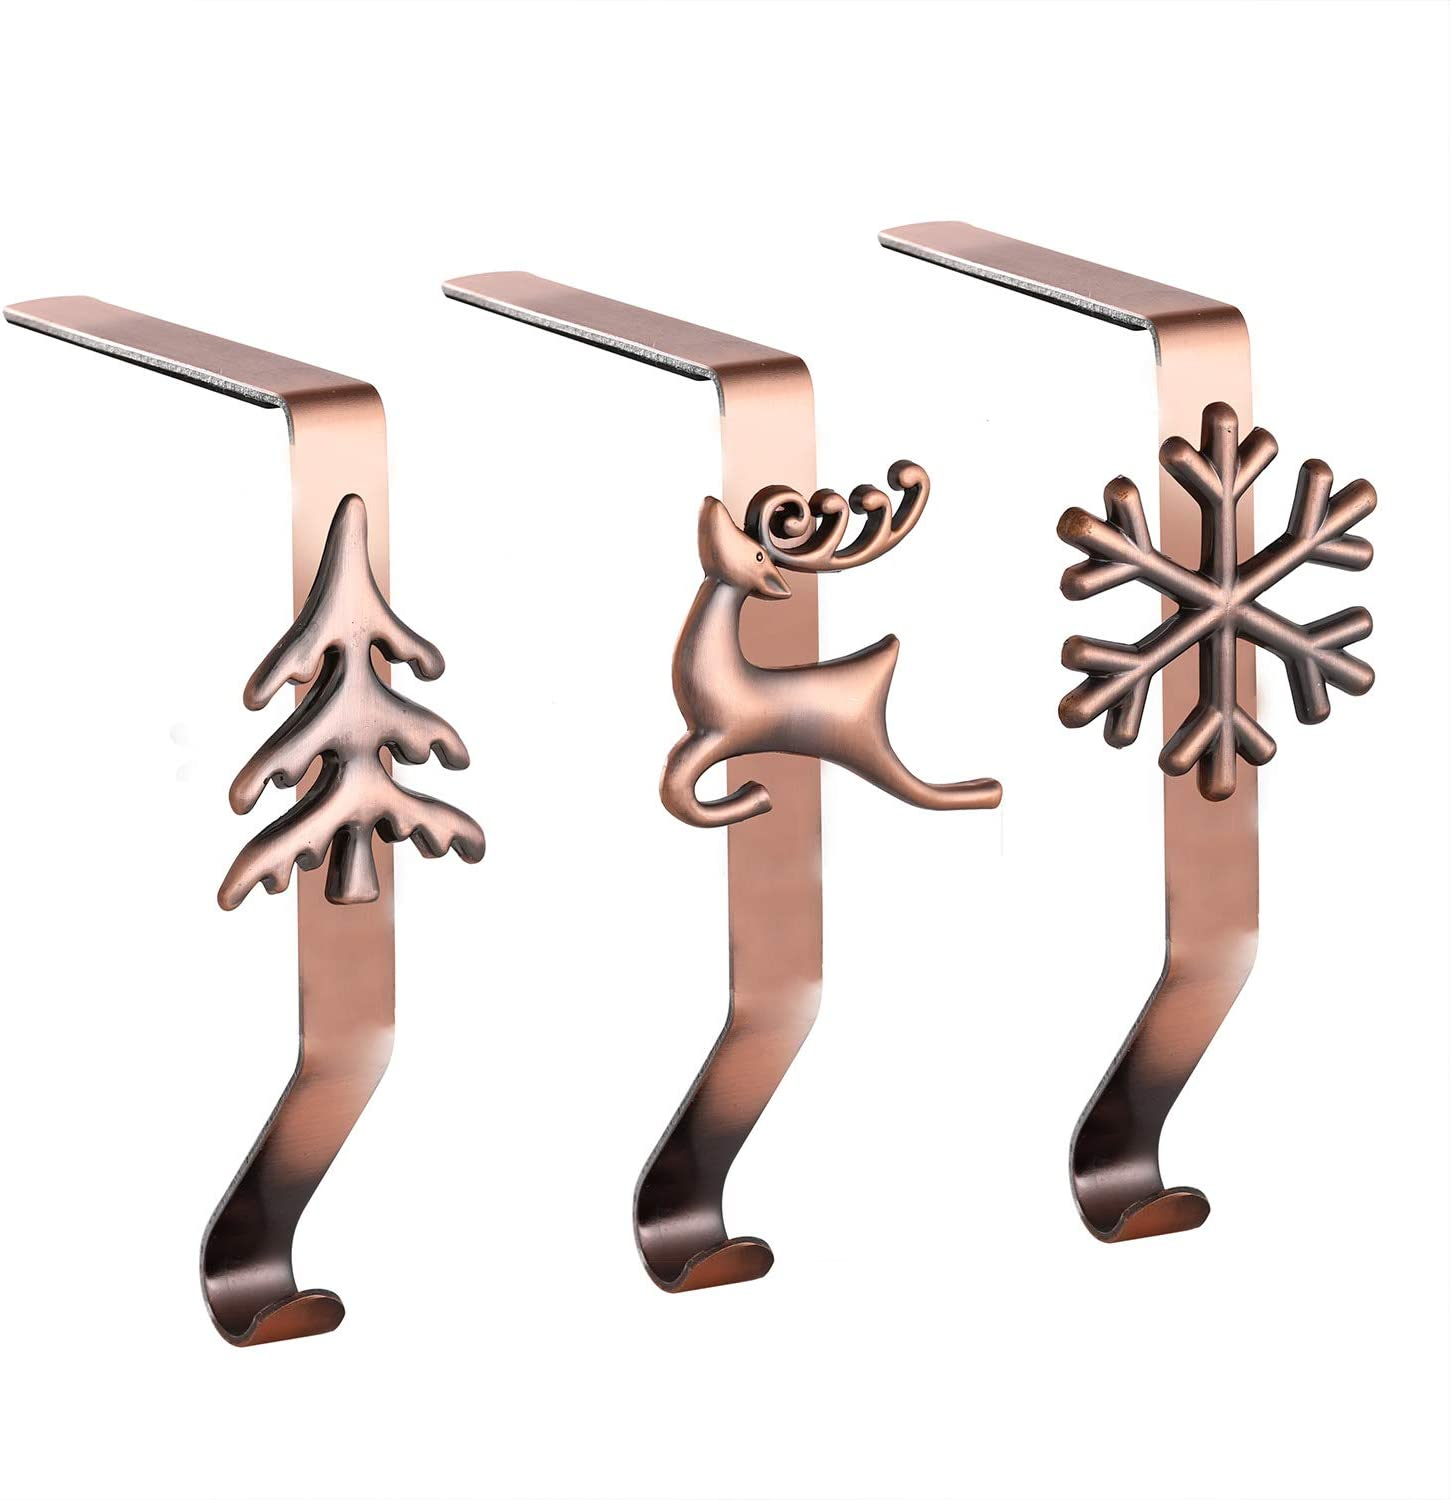 Set of 3 Stocking Holders for Mantle - Christmas Stocking Holder for Mantle Christmas Stocking Hangers for Mantel Stocking Hooks for Fireplace Stocking Holders for Christmas Decoration (Red Copper, 3)